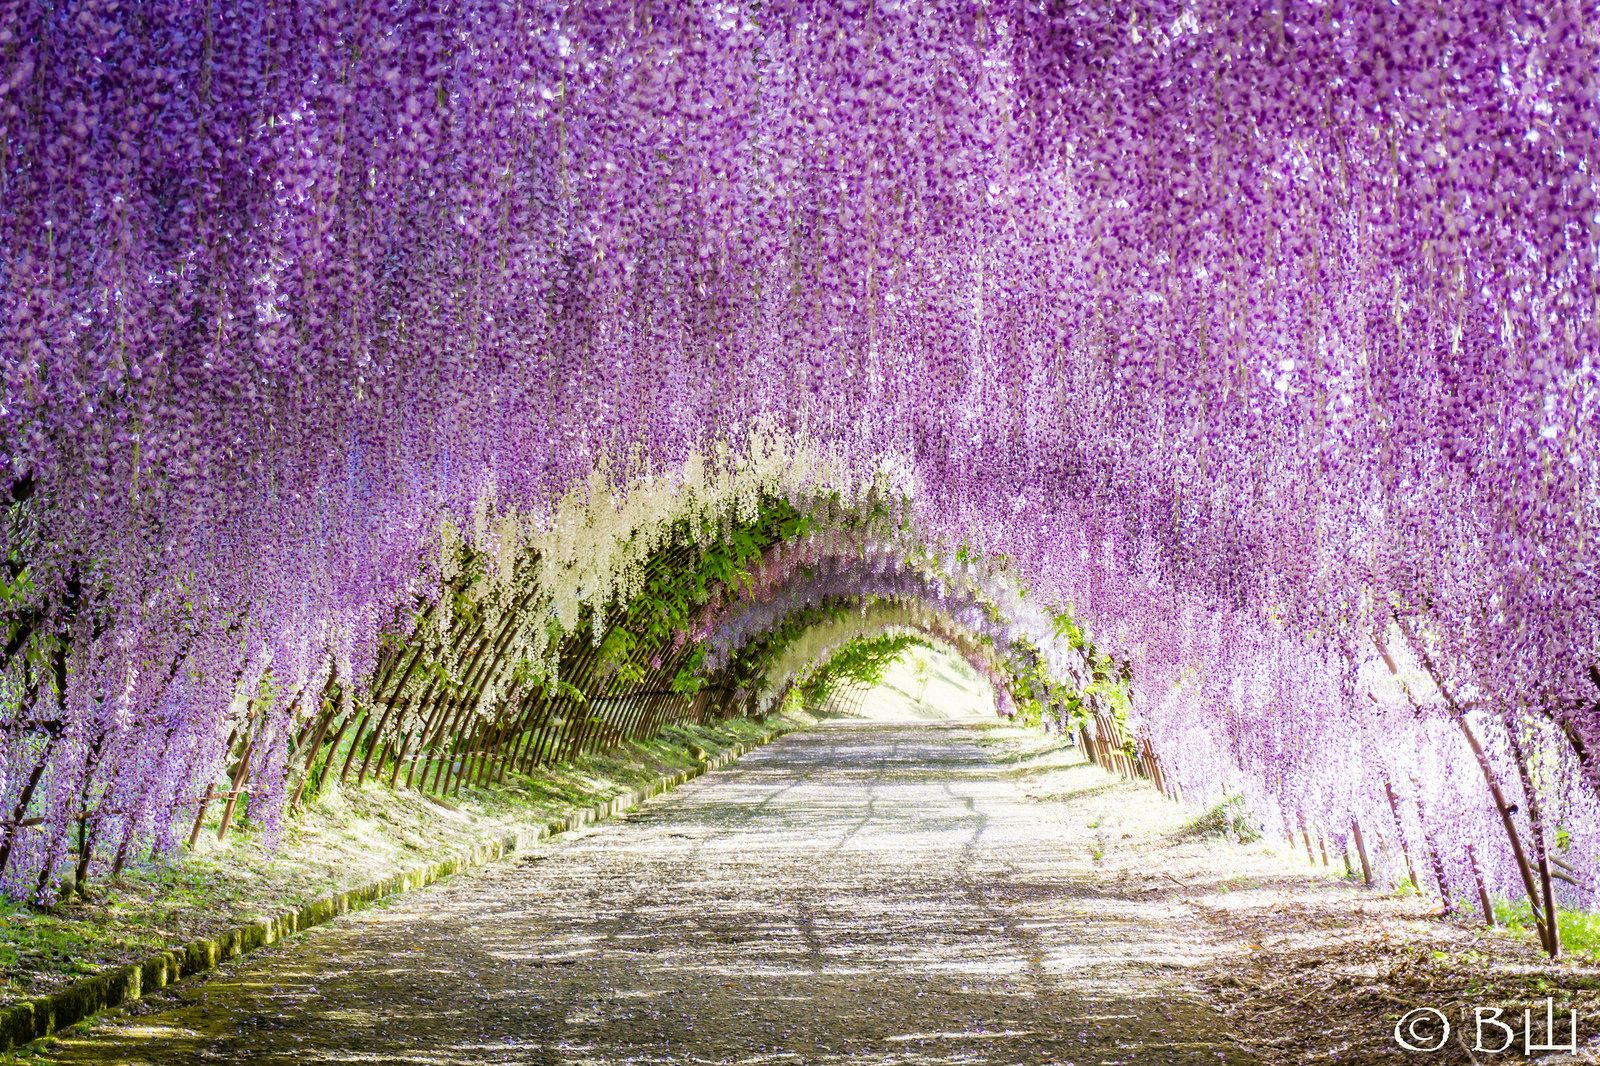 Wisteria Tunnel Japan Wisteria Tunnel Kitakyushu Wisteria Tunnel Japan